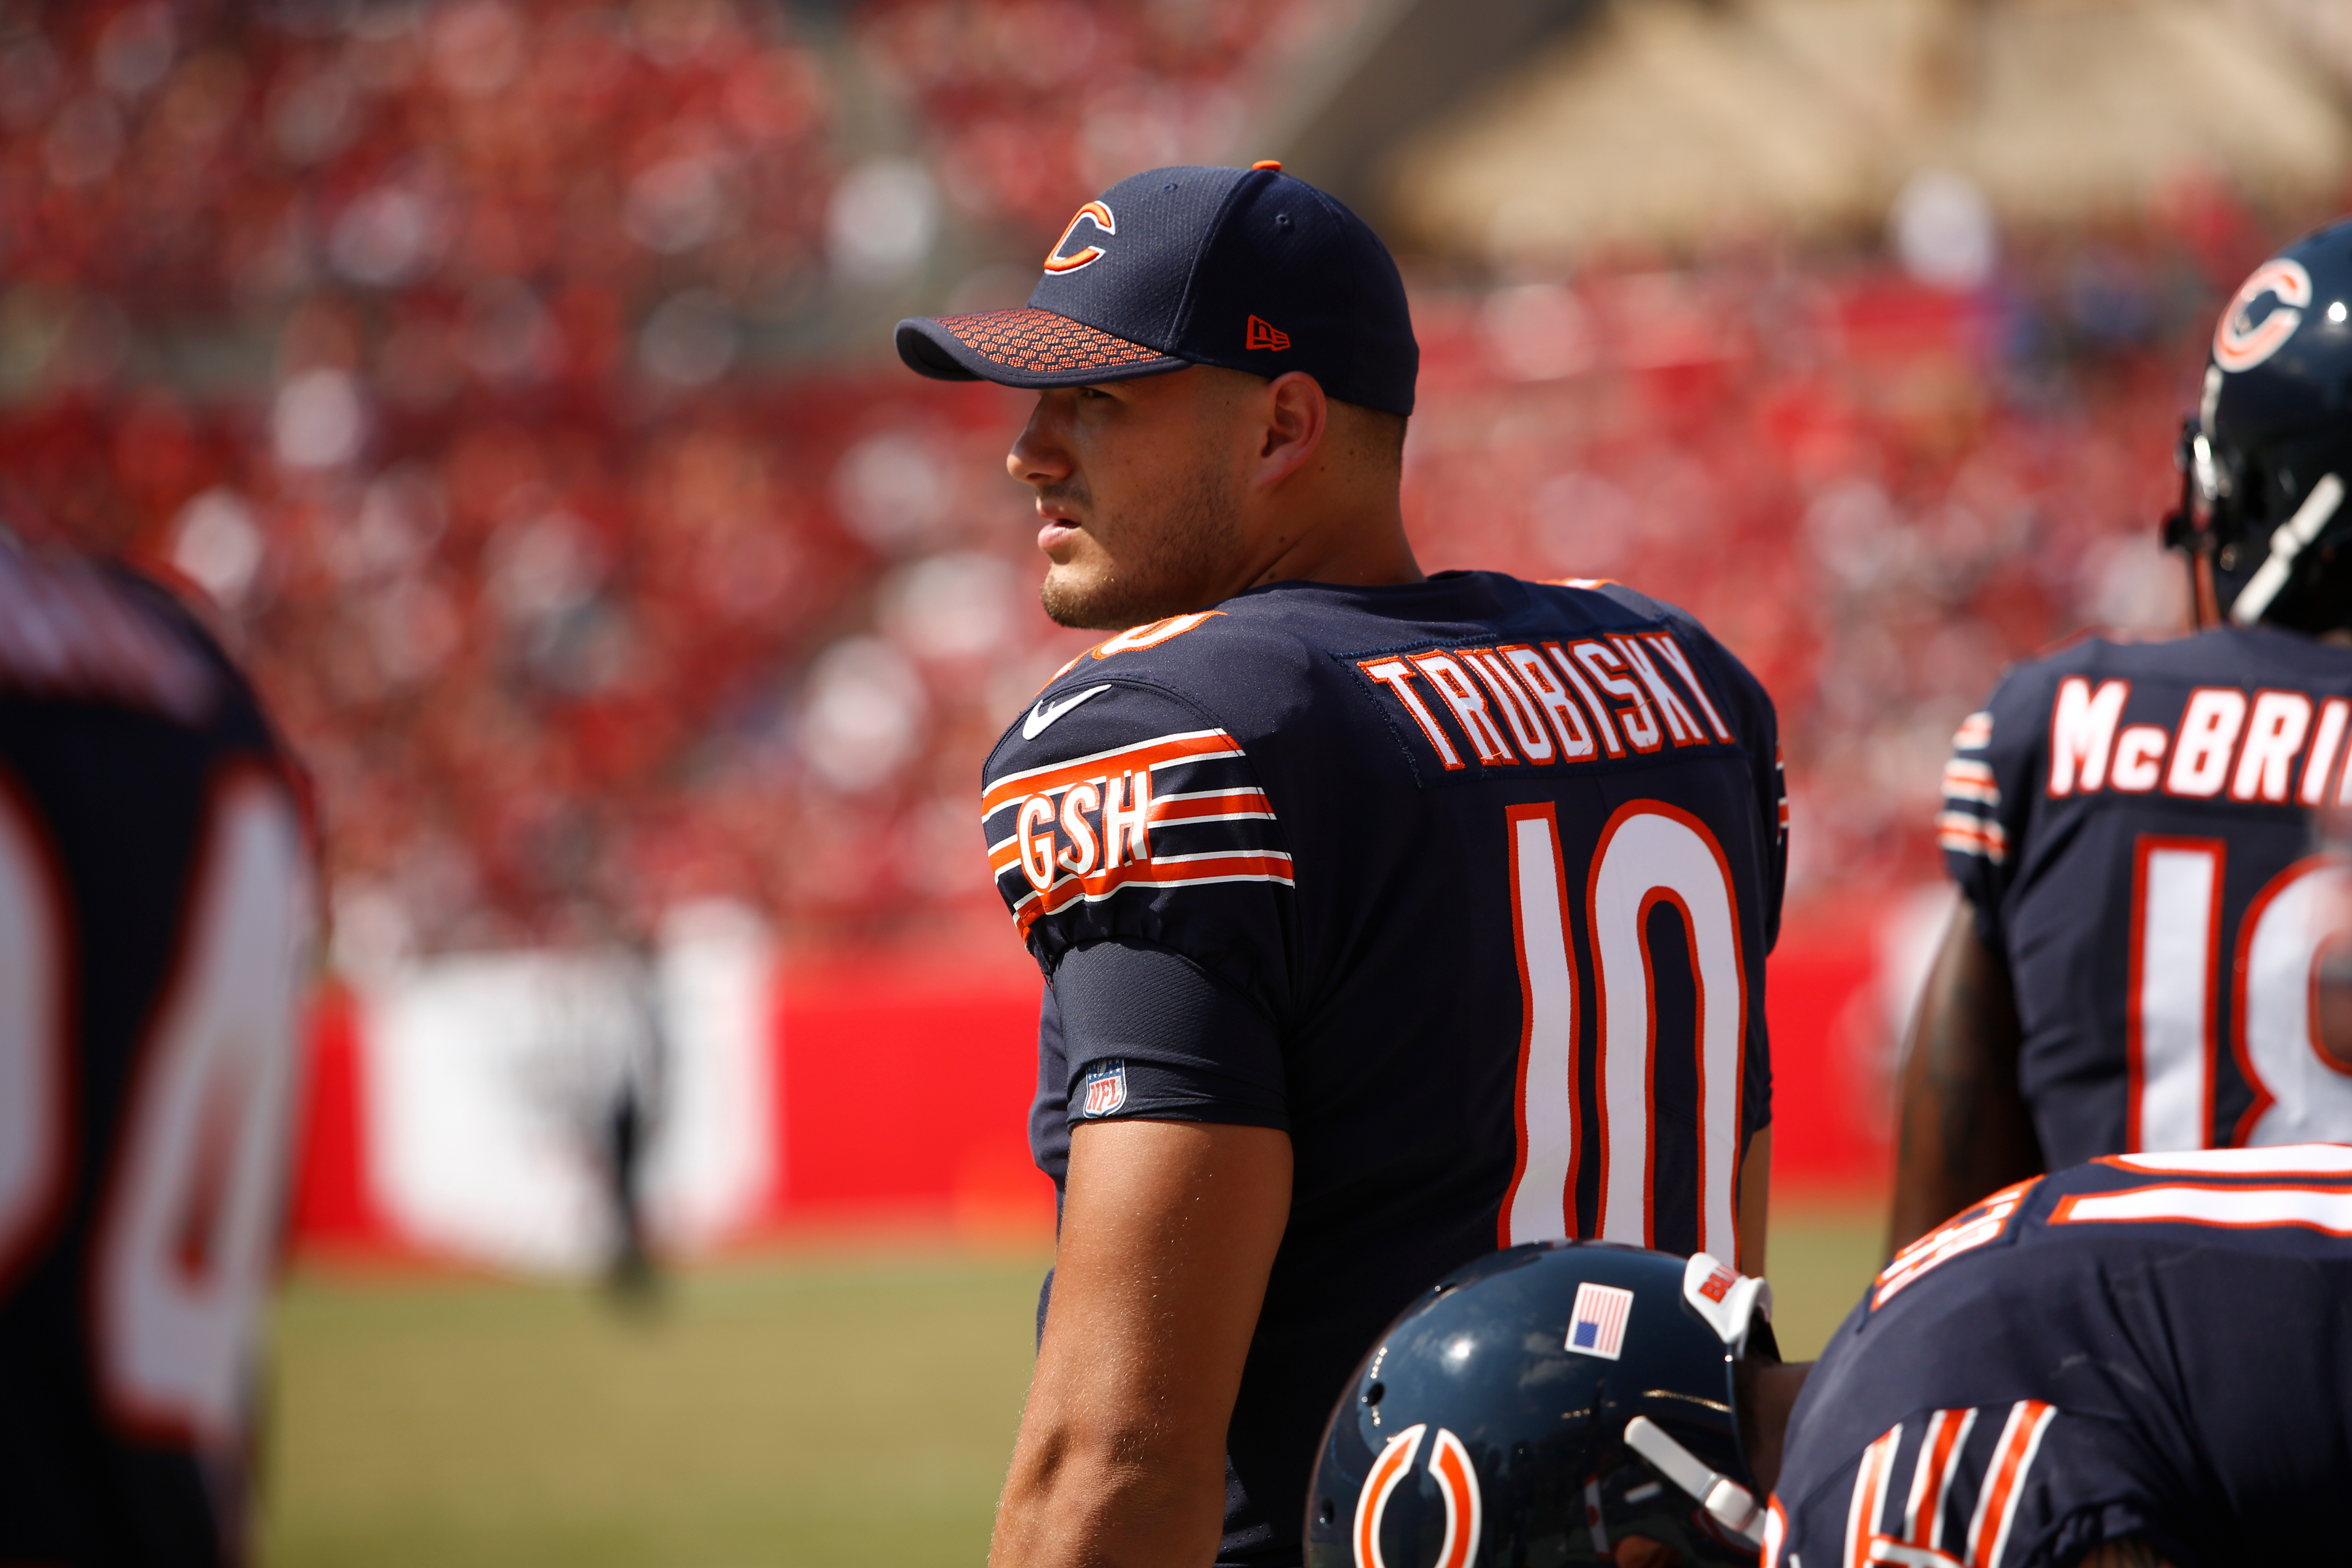 Bears vs. Buccaneers: Highlights, game tracker and more